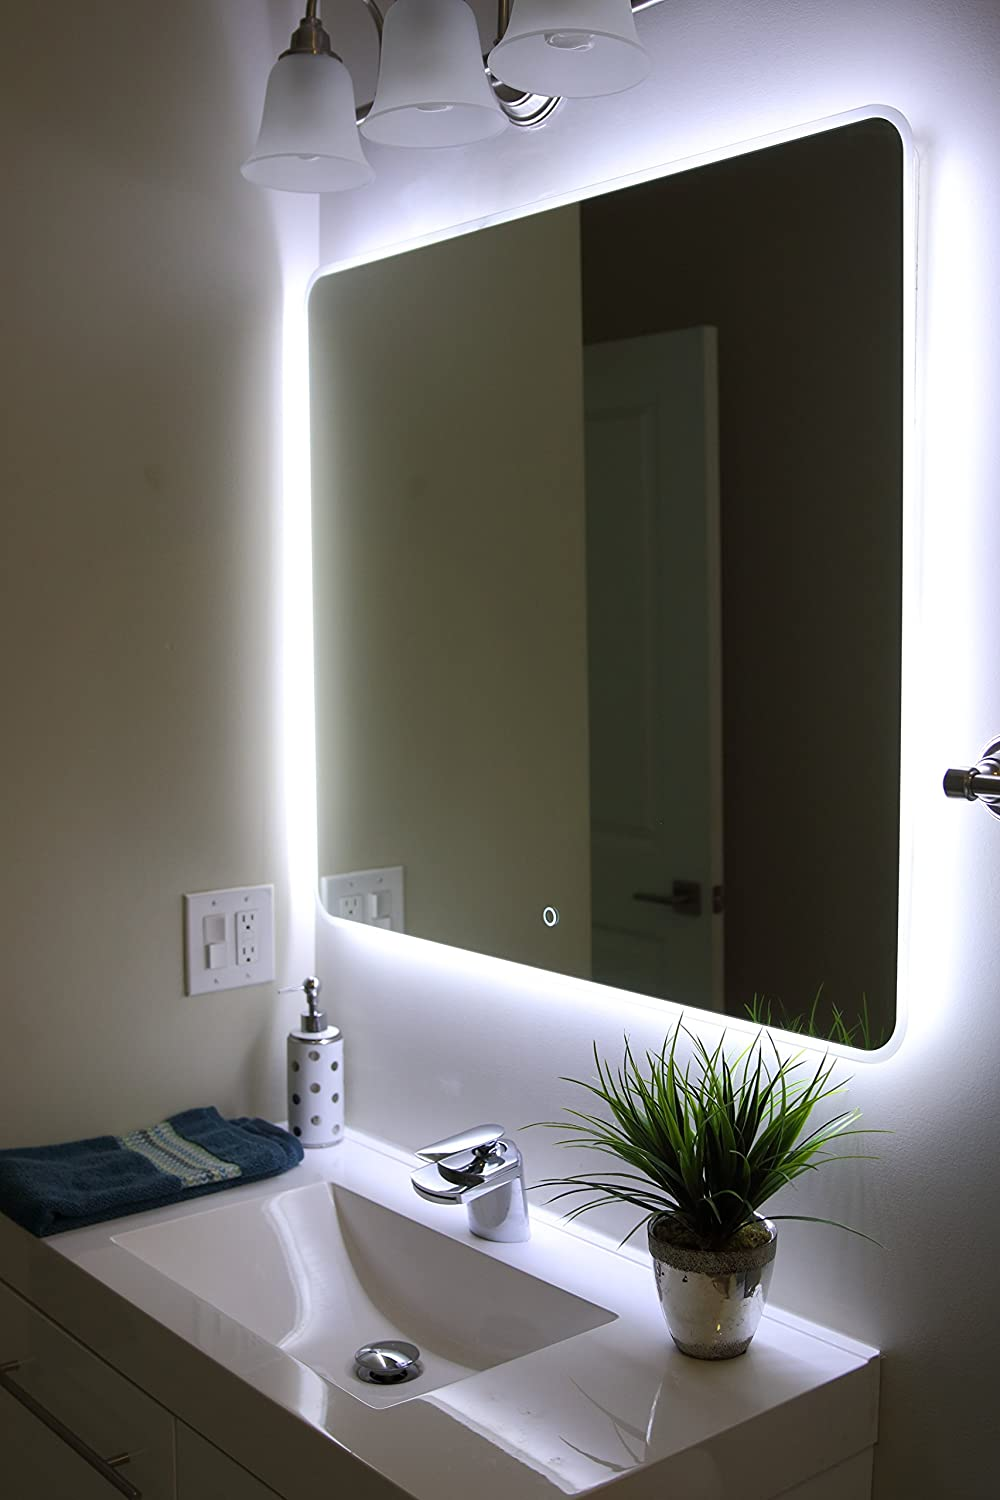 amazoncom windbay backlit led light bathroom vanity sink mirrorilluminated mirror () home  kitchen. amazoncom windbay backlit led light bathroom vanity sink mirror